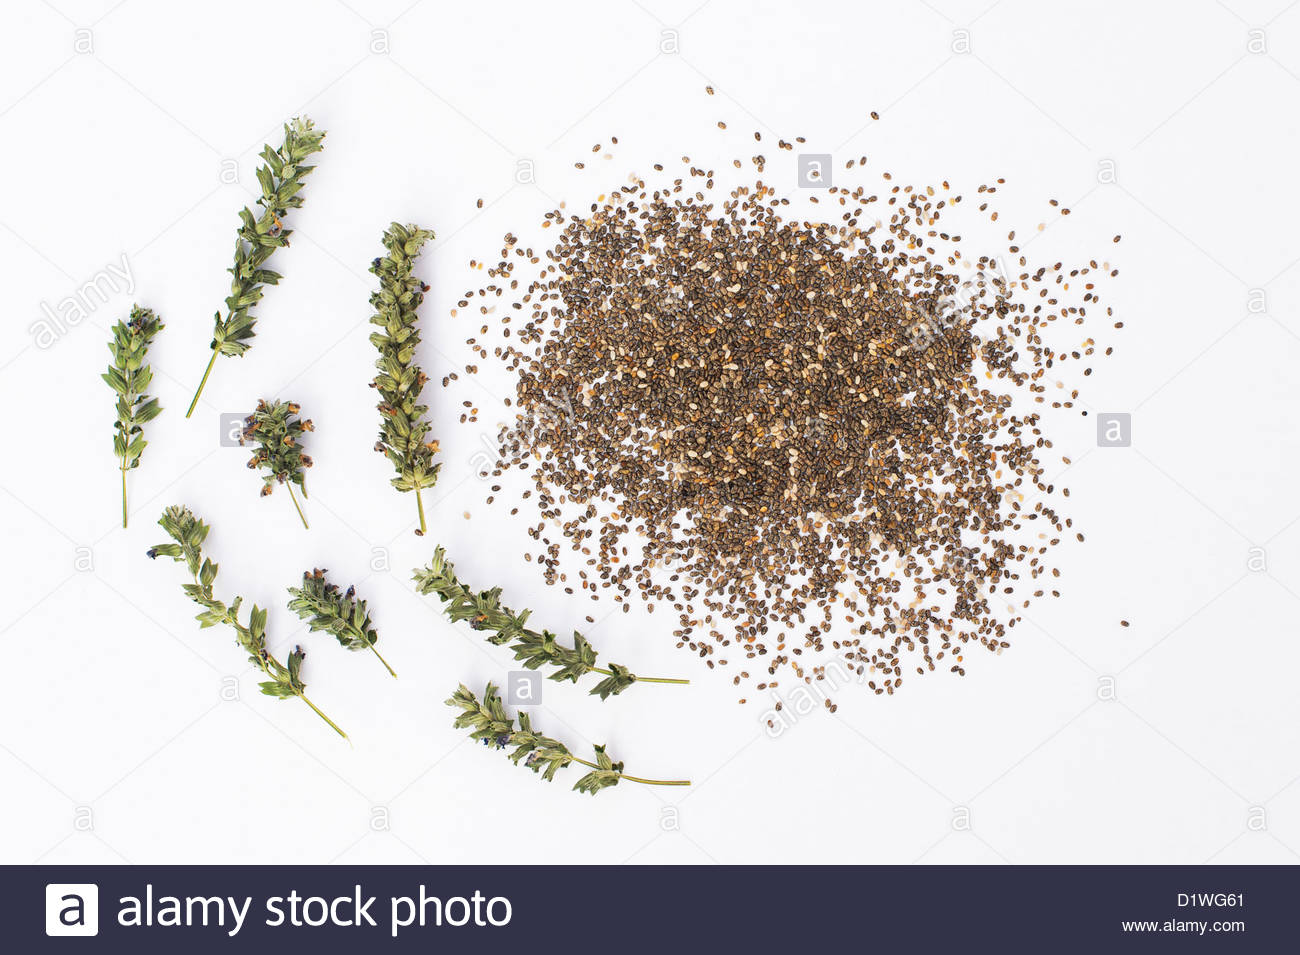 Salvia Hispanica flower seed pods and Chia seeds on white background ...